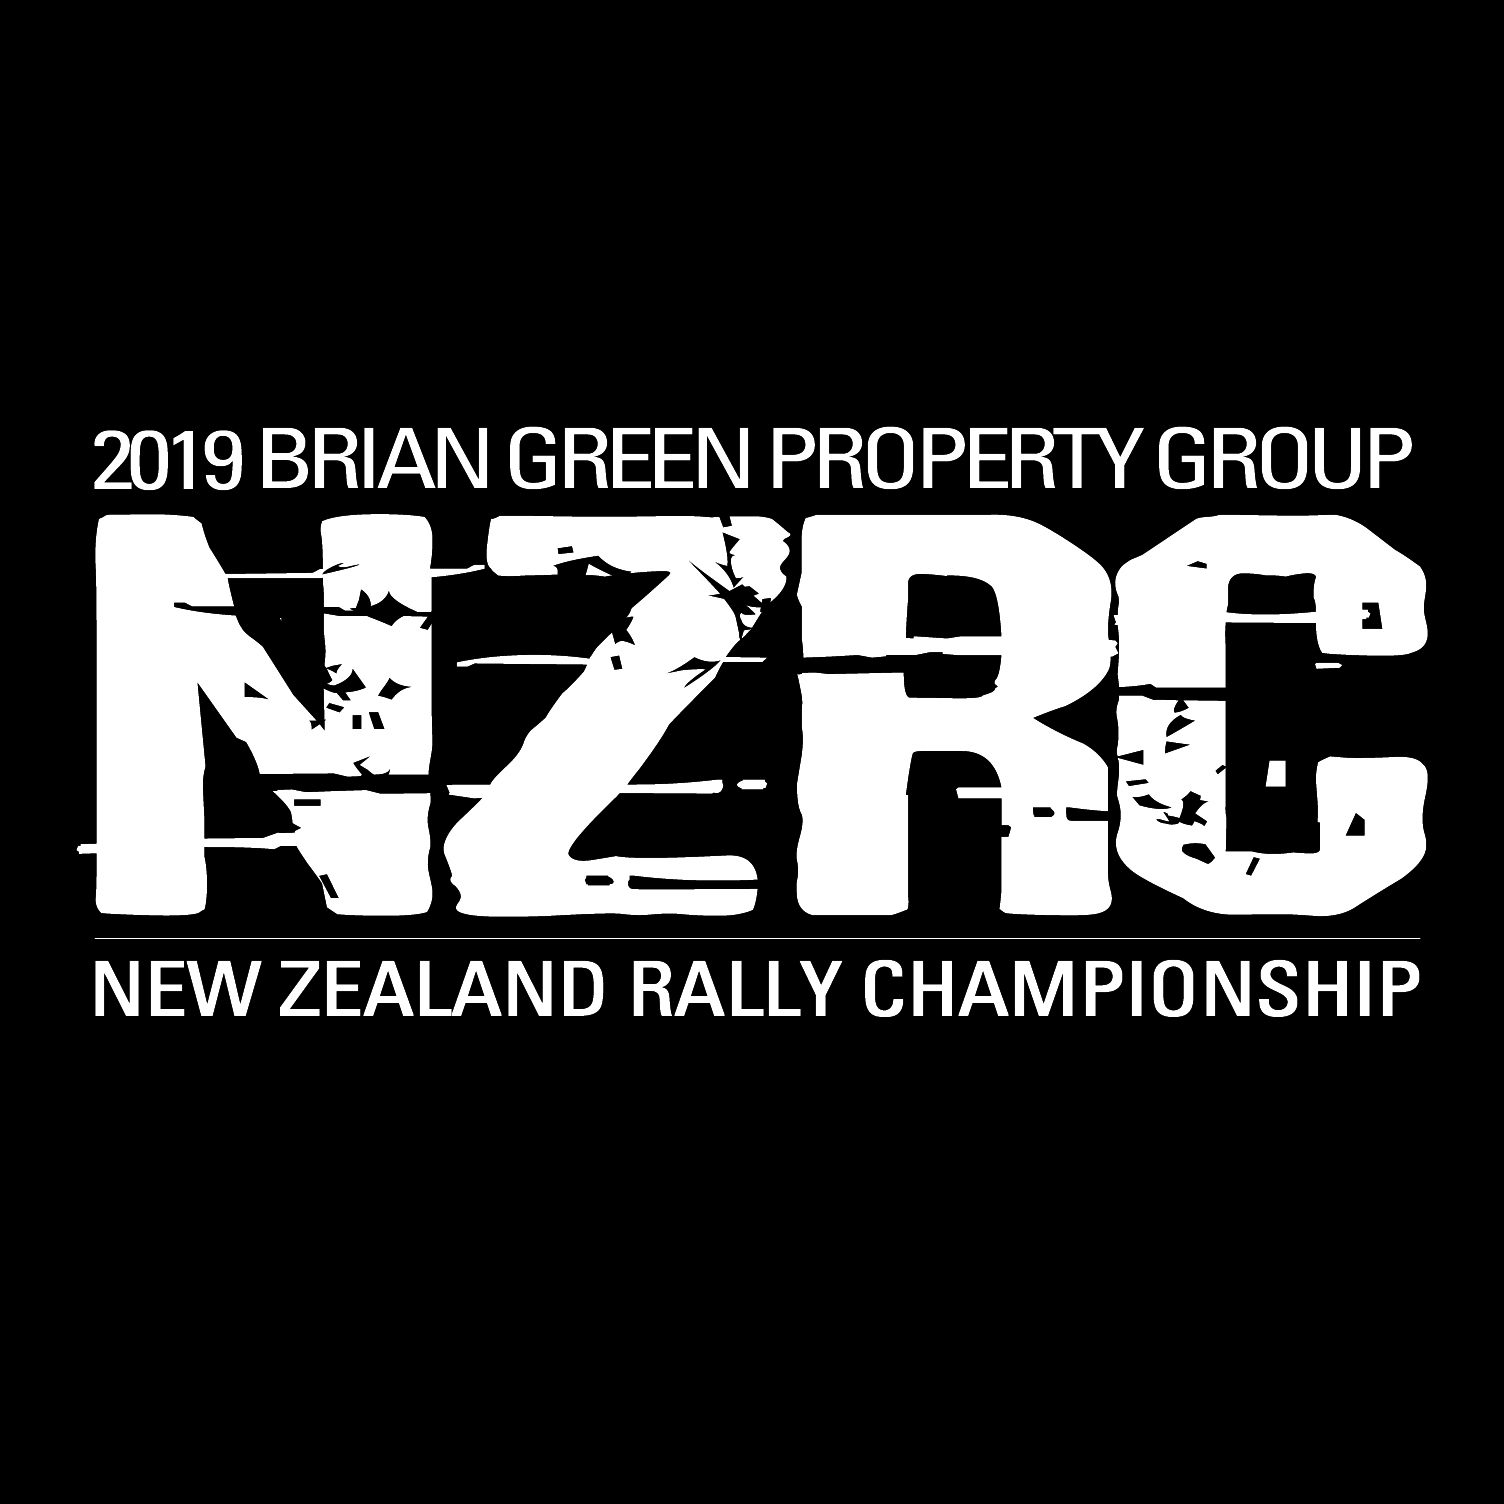 Leon Styles provides unique sponsorship to NZRC | :: Brian Green Property Group New Zealand Rally Championship ::